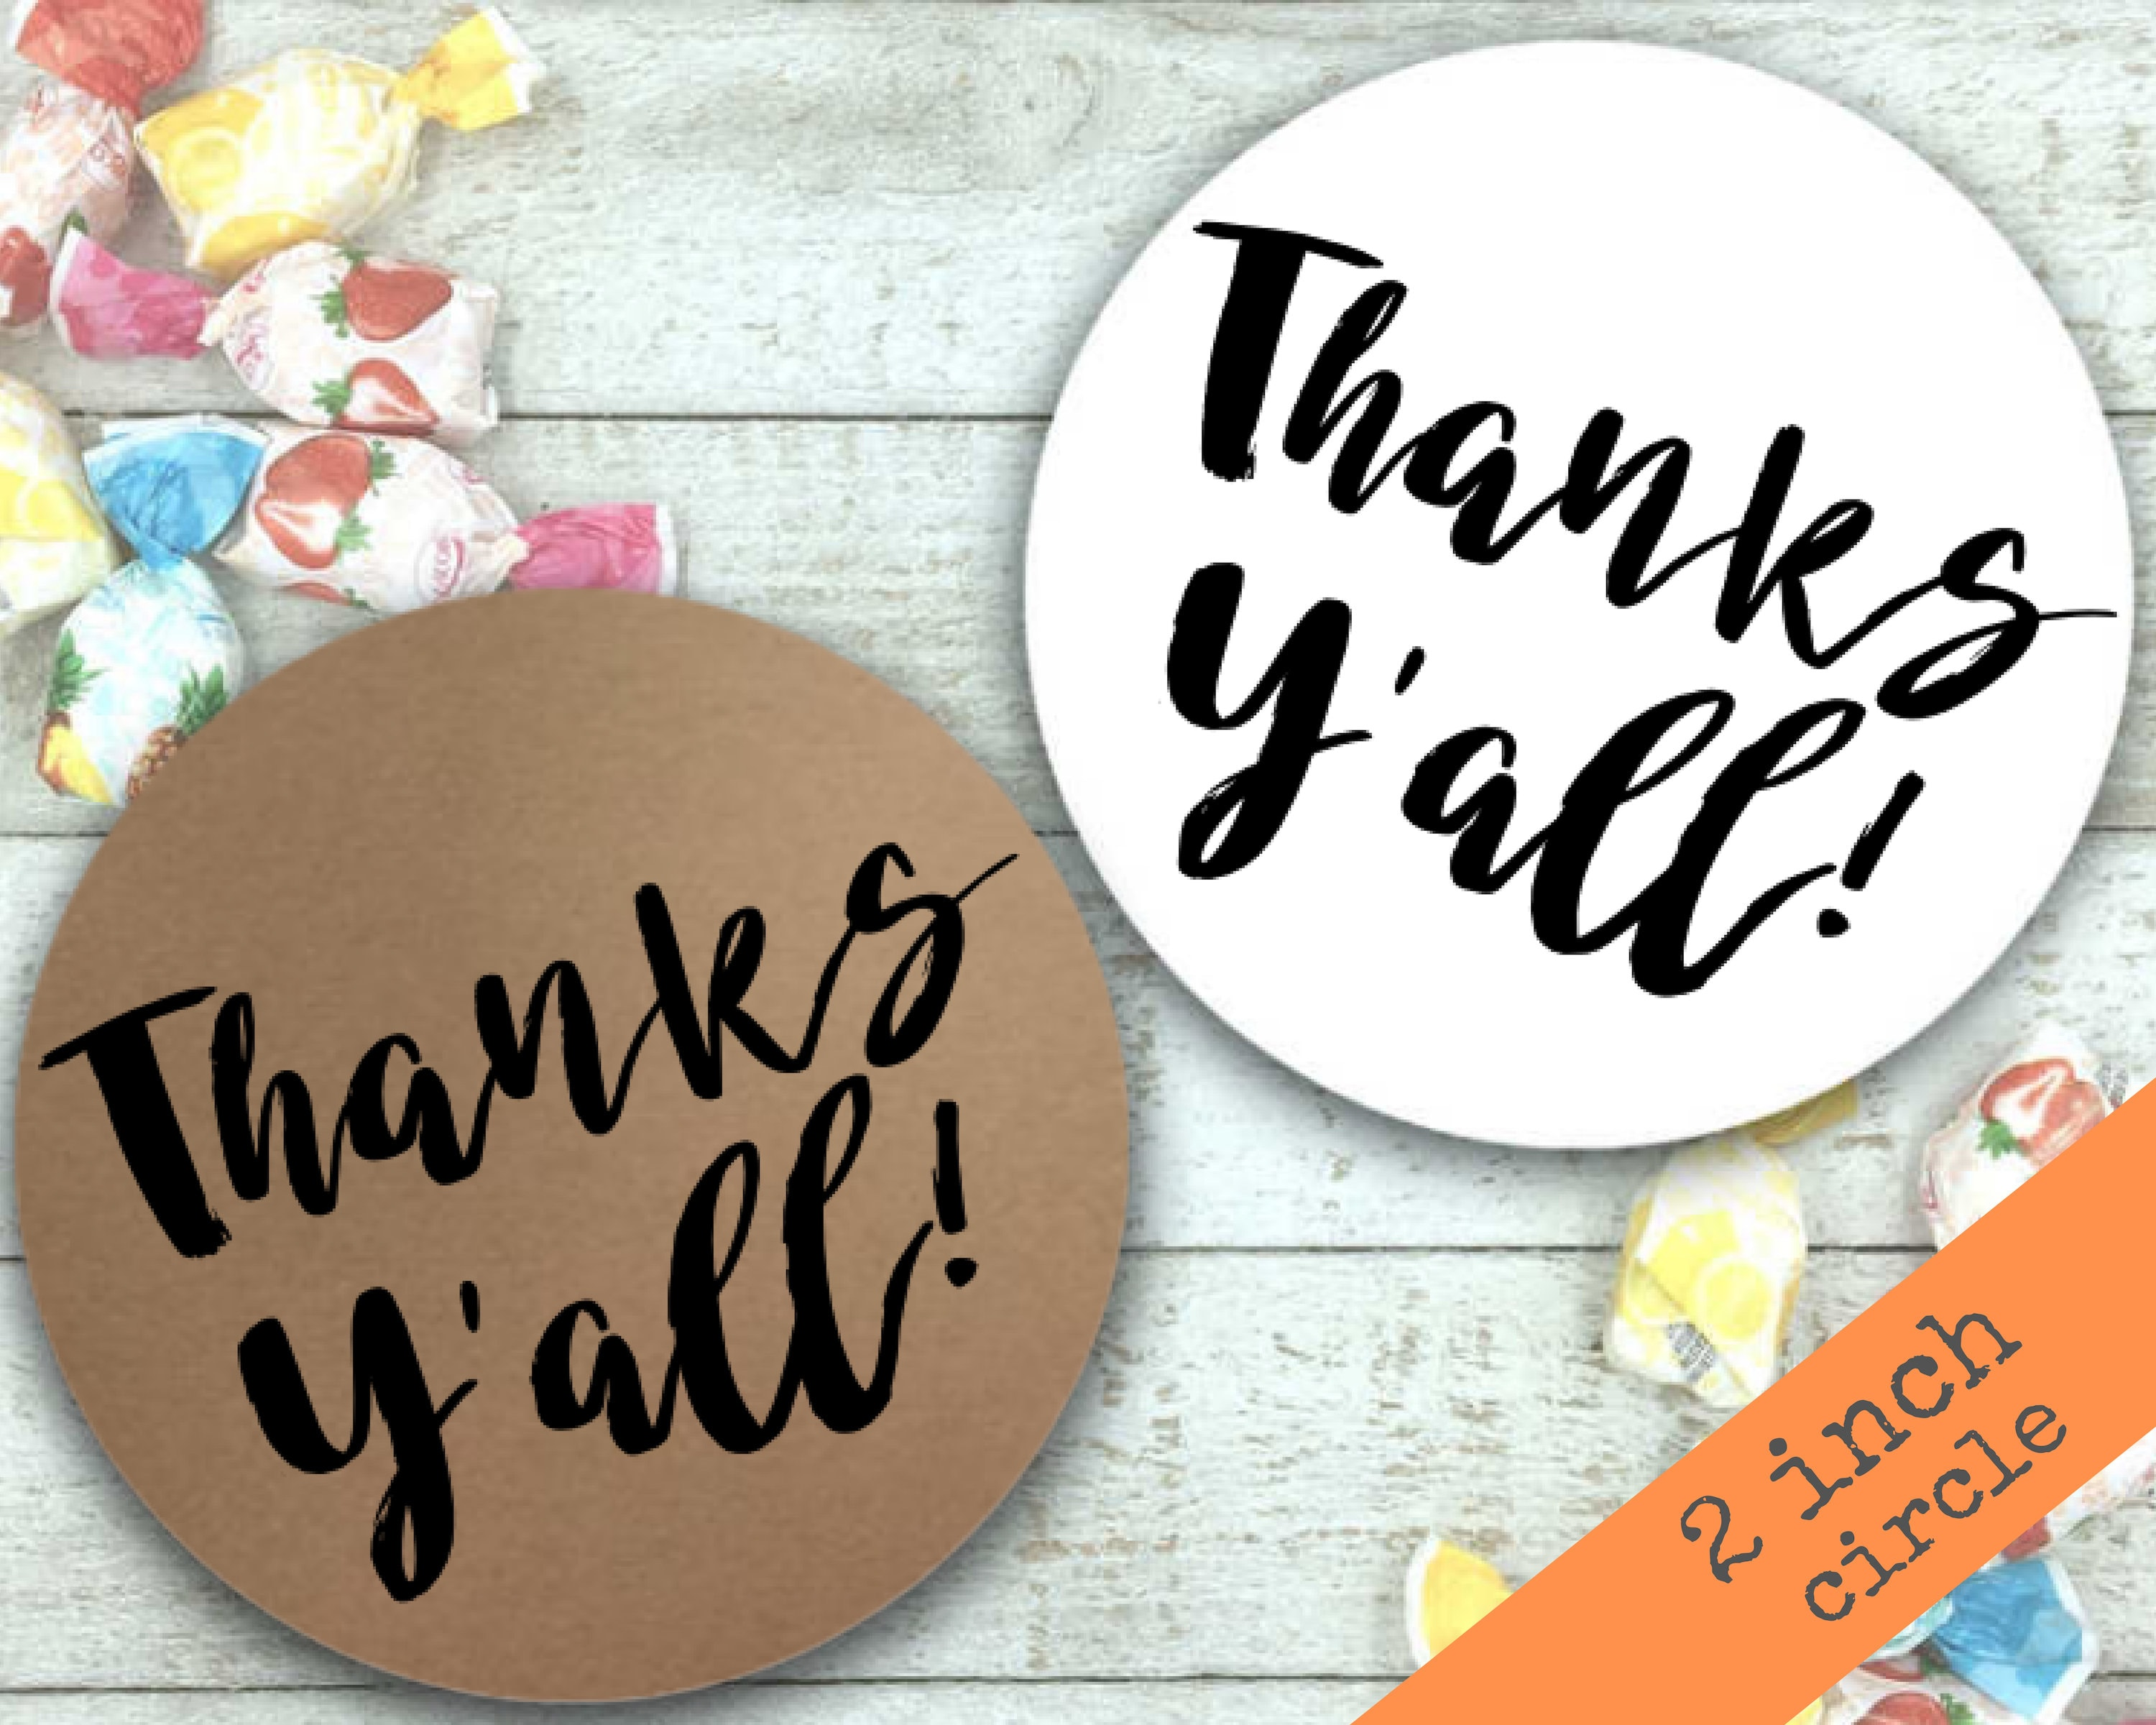 20 Or 30 1 5 Or 2 Thank You Stickers Labels Wedding Shower Envelope Seals Greeting Cards Invitations Home Garden